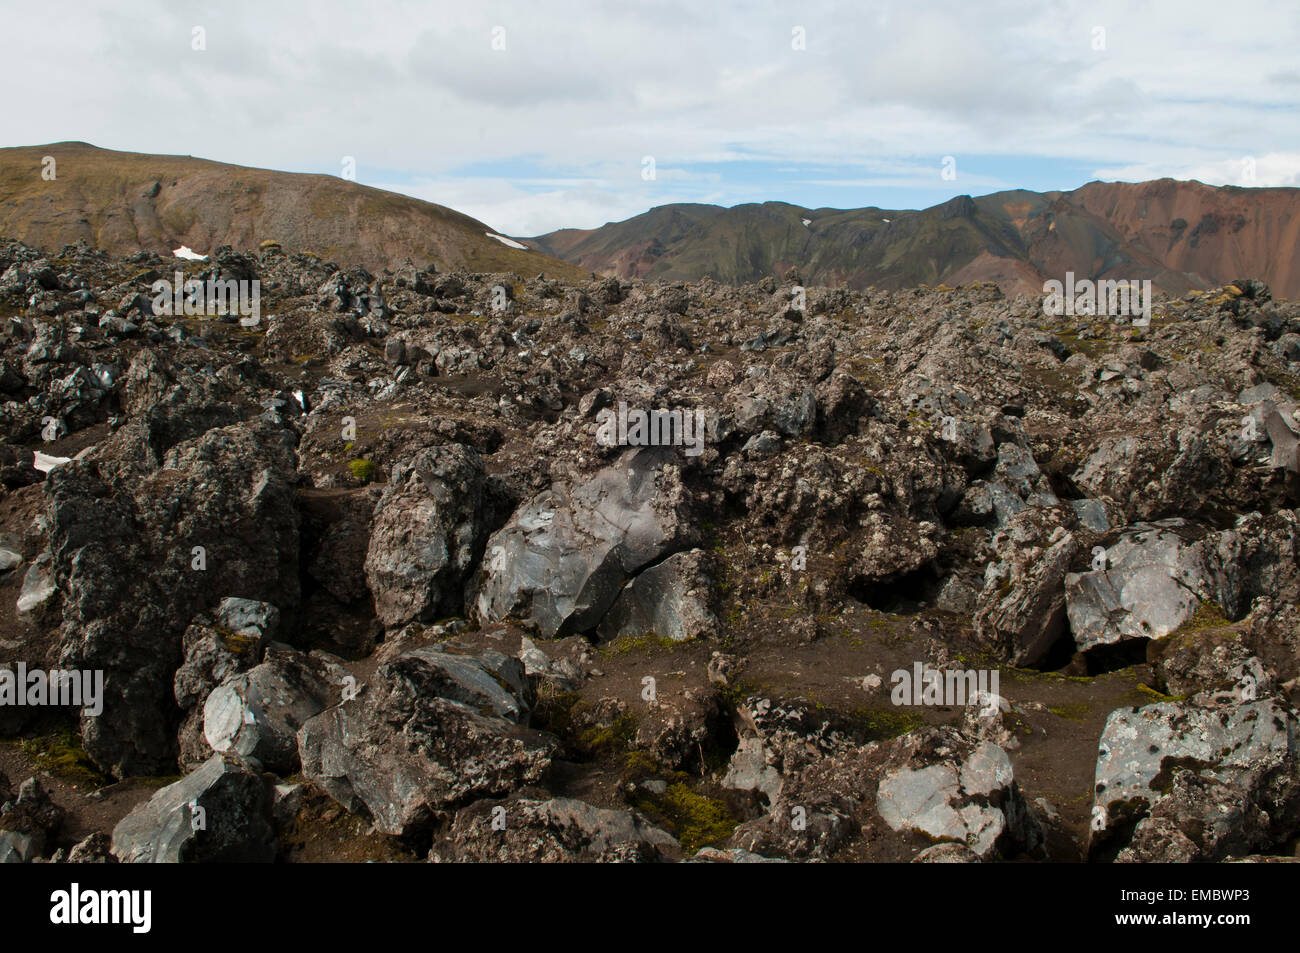 landscape with cooled down of stream of lava, Fjallabak National Park, Landmannalaugar, Iceland - Stock Image